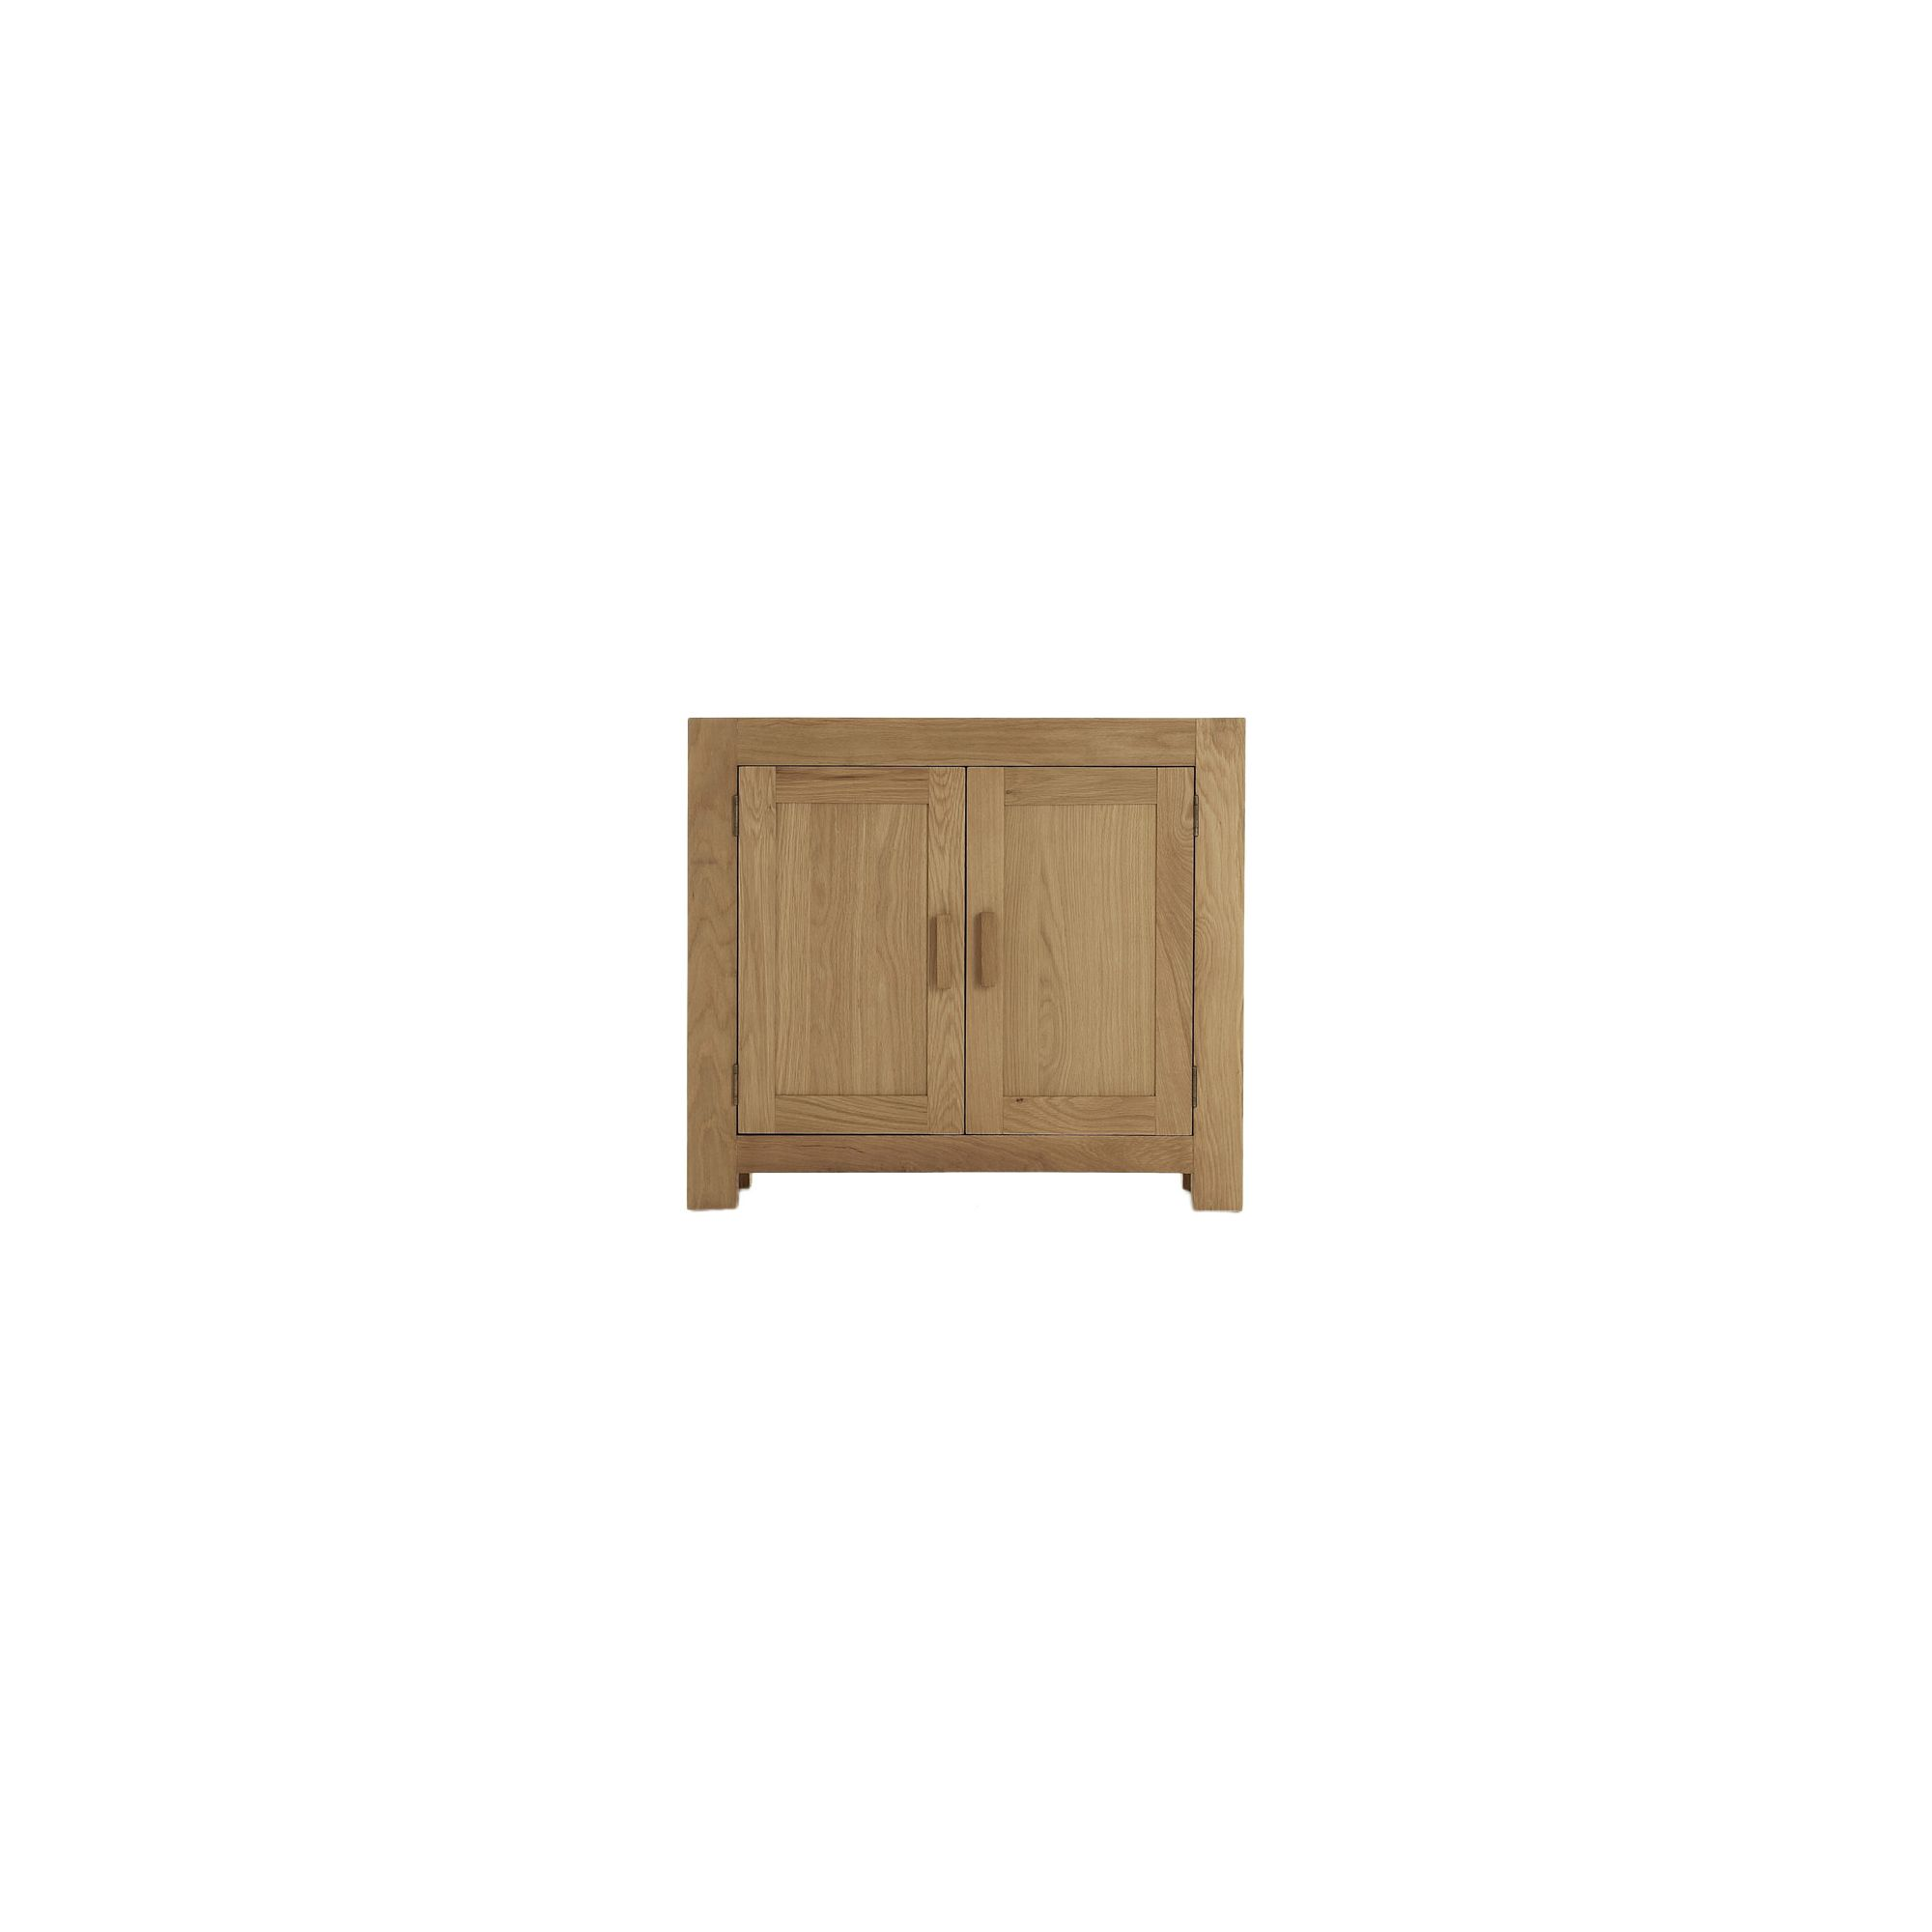 Thorndon Block Small Sideboard in Natural Matured Oak at Tesco Direct